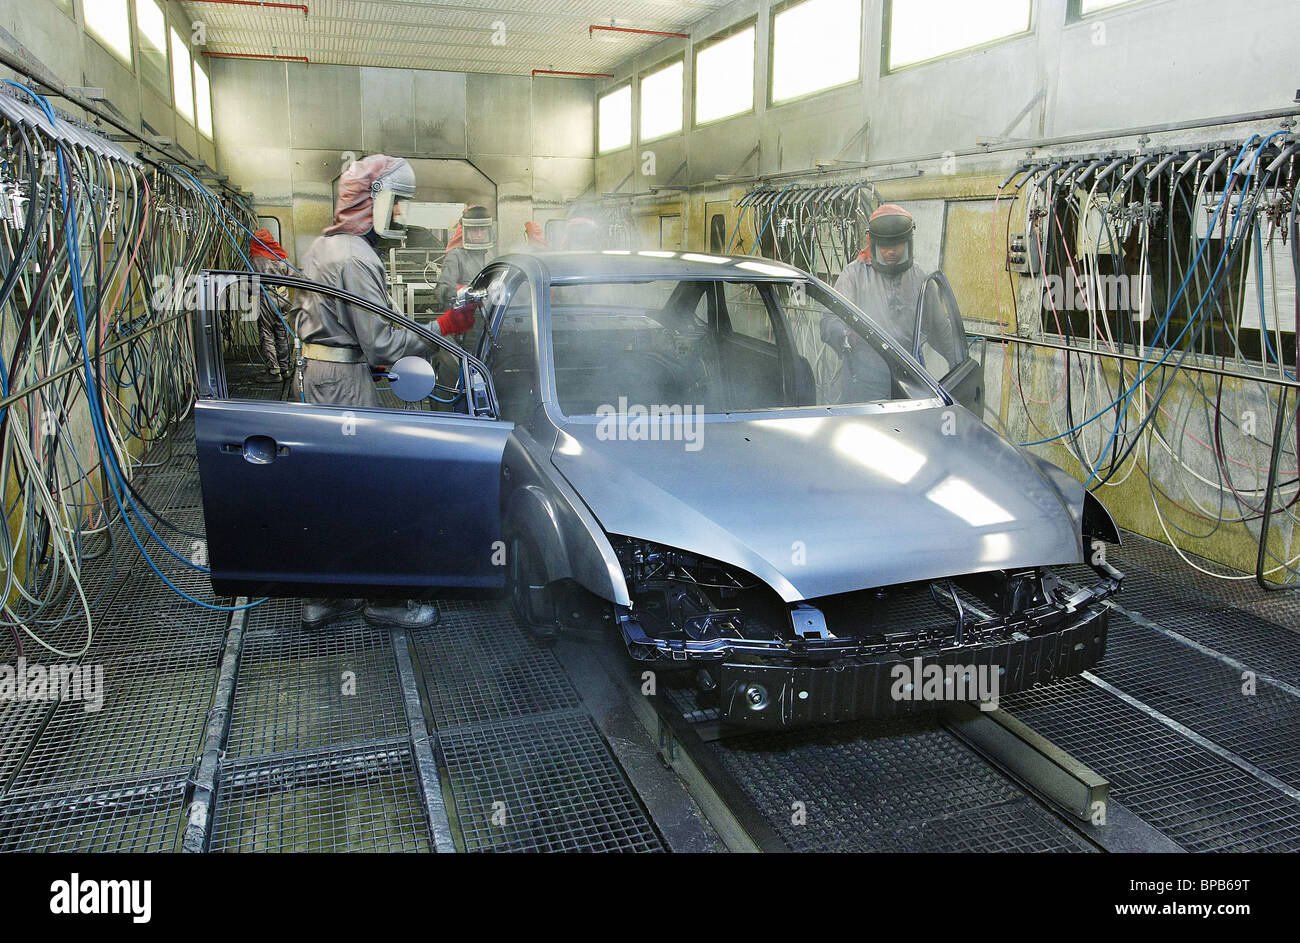 Ford Focus Ii Cars Produced At Ford Motor Company Plant In Leningrad